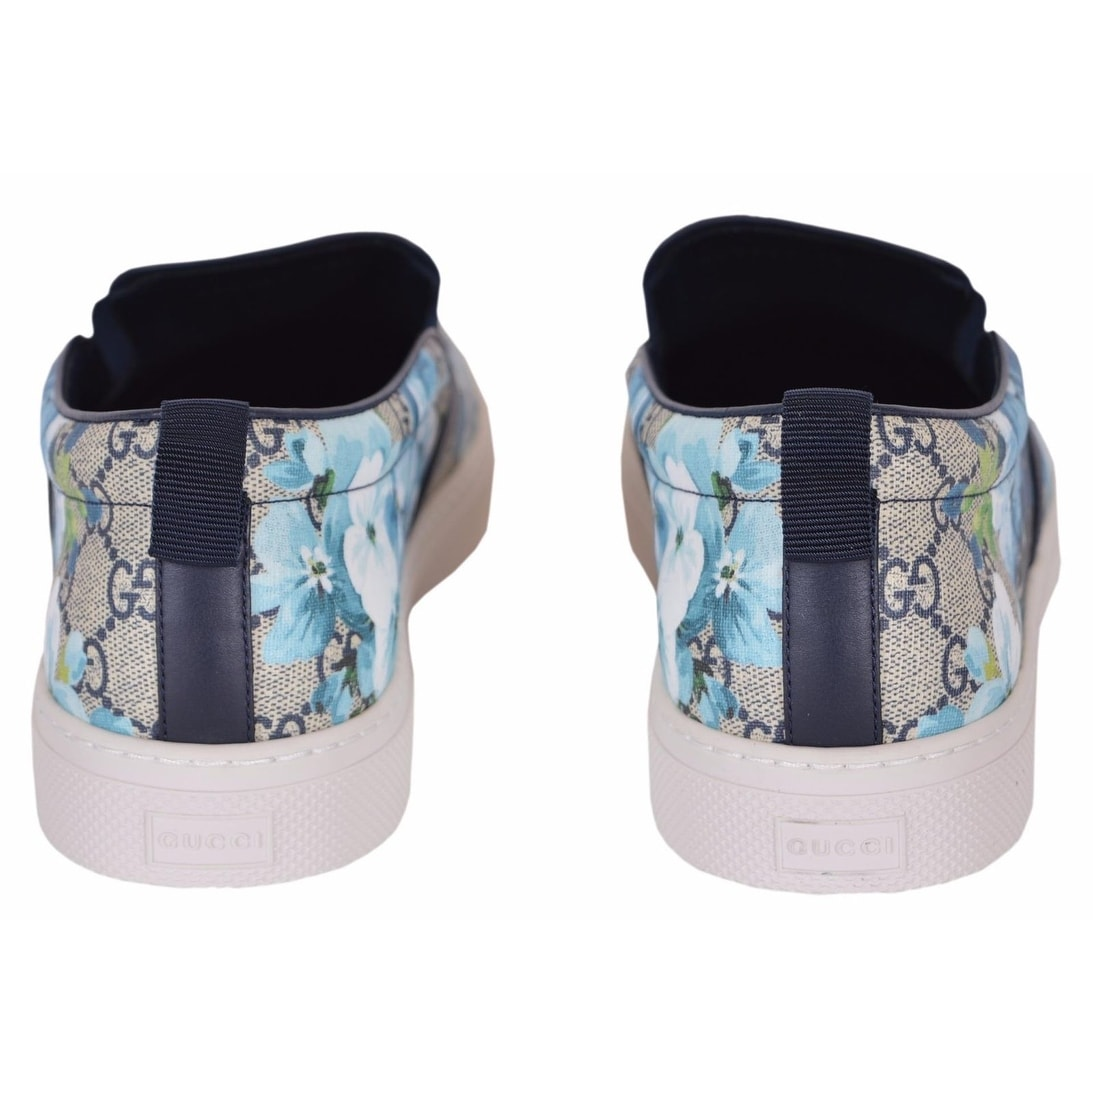 897db8aa2fd Shop Gucci Men s 407362 GG BLOOMS BLUE Coated Canvas Slip On Sneakers Shoes  12.5G 13.5US - Free Shipping Today - Overstock - 18945852